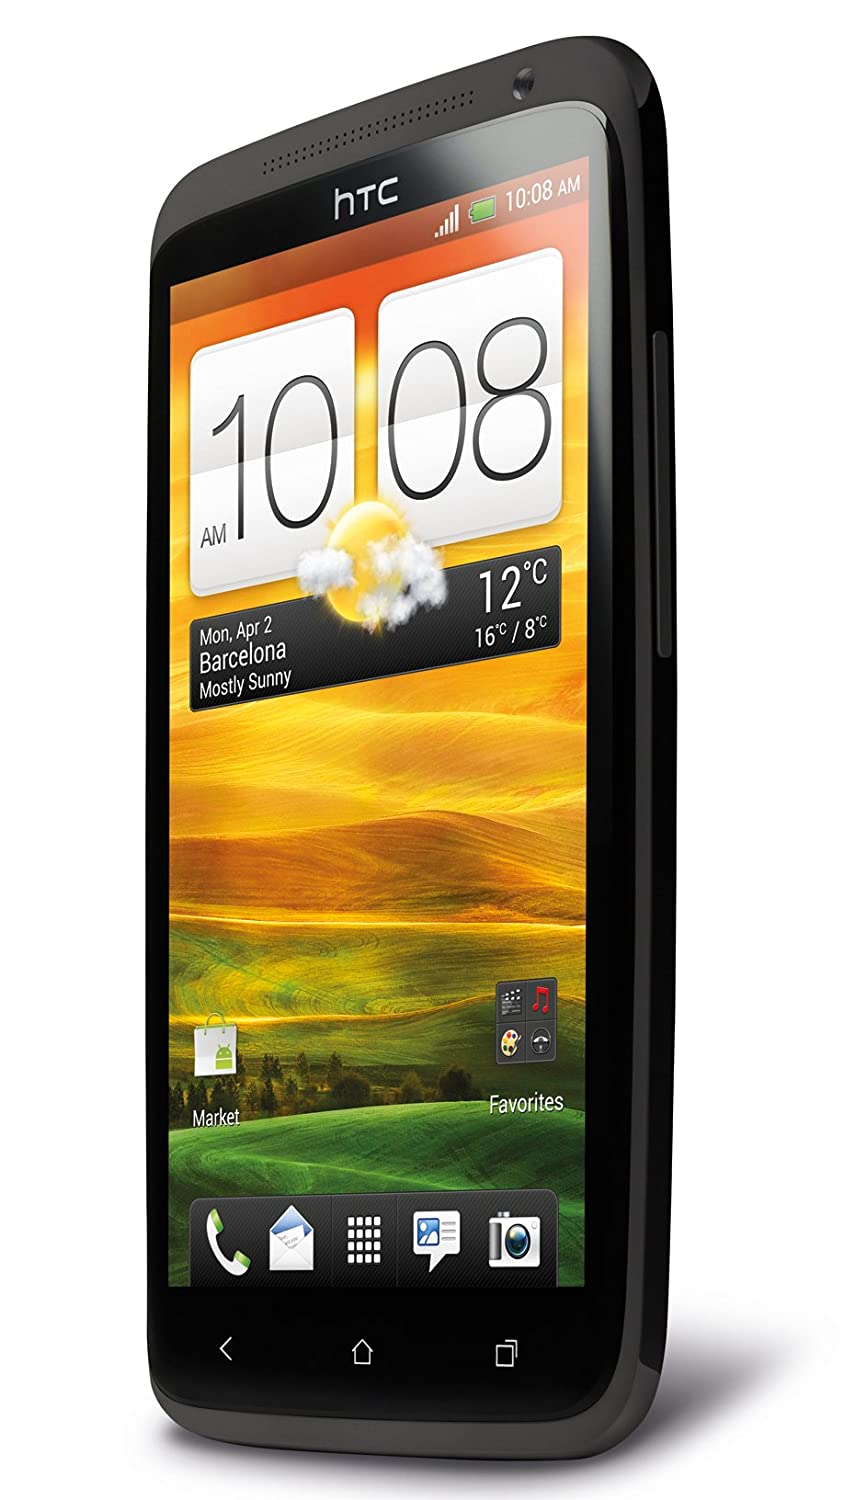 HTC One X: specifications, reviews, prices, description